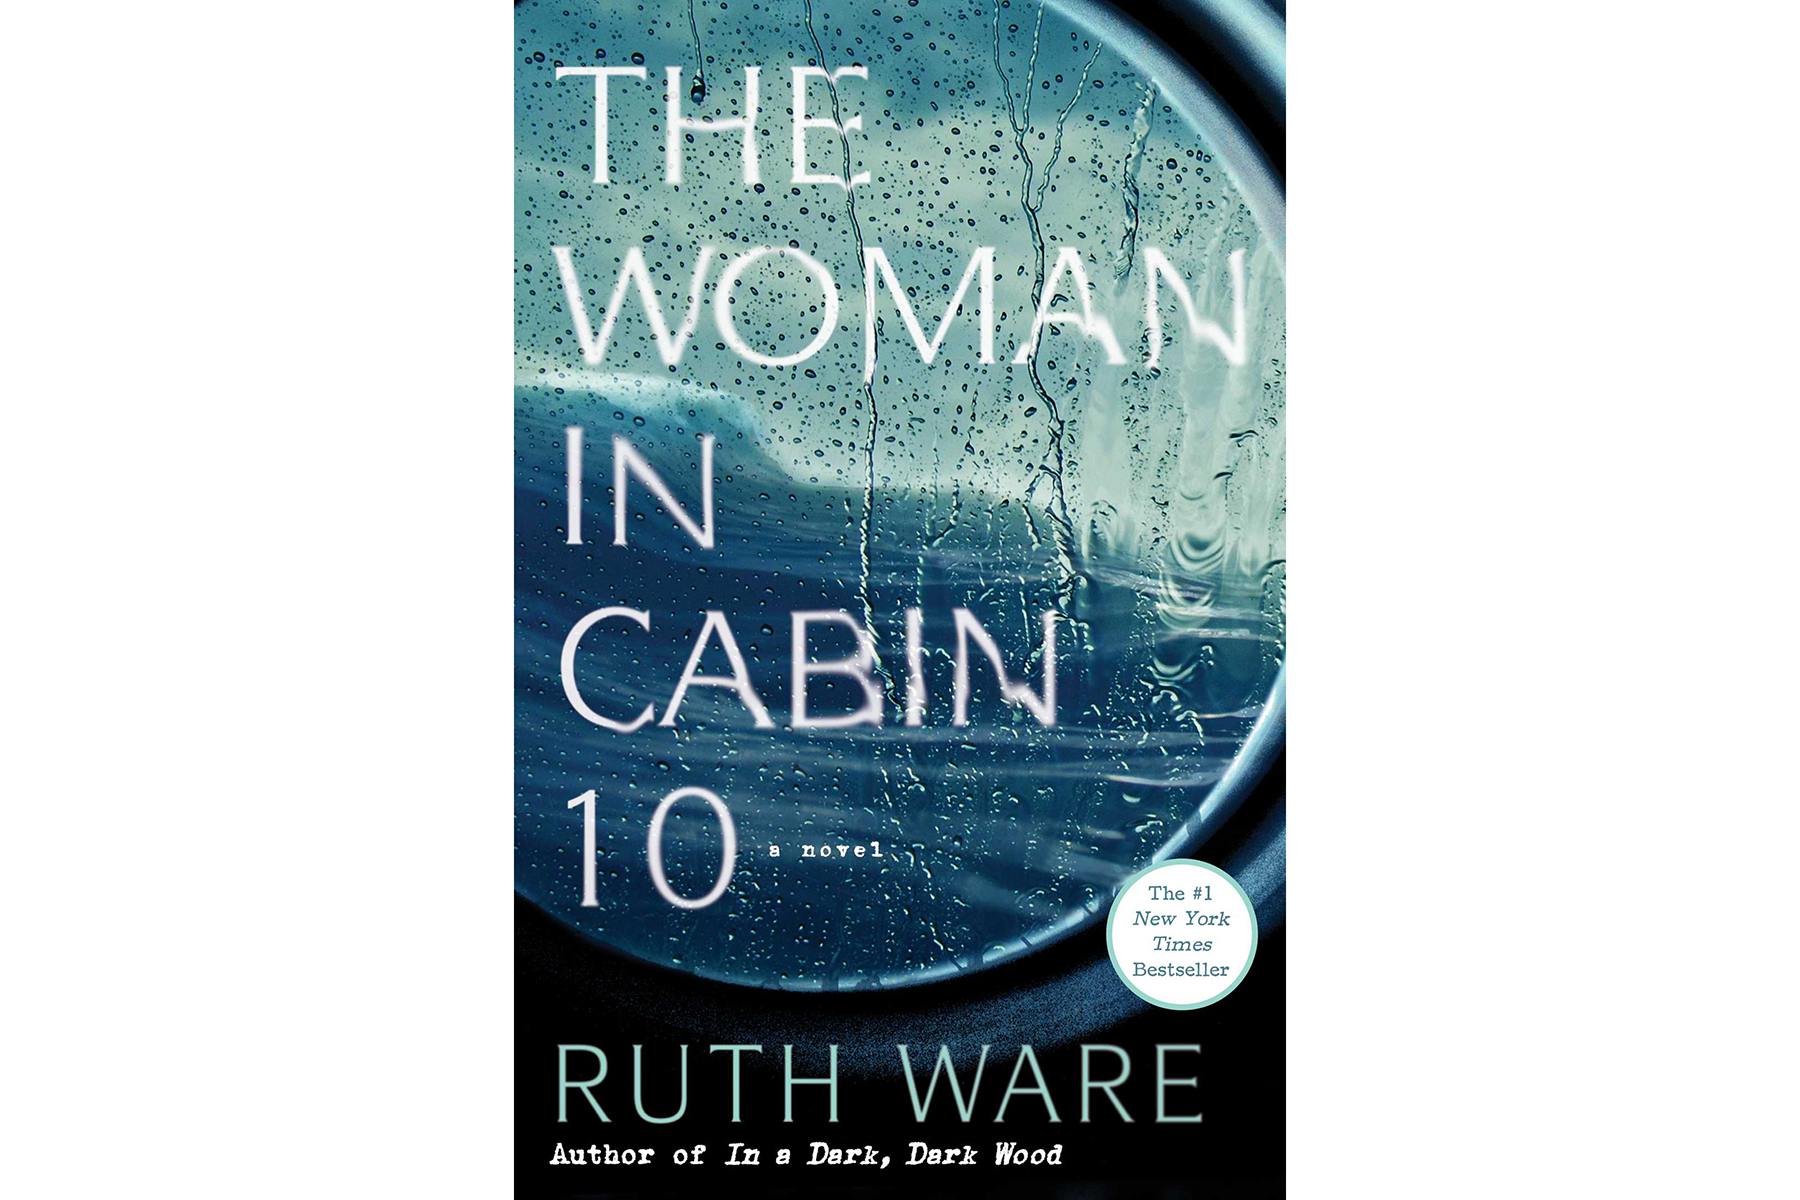 Cover of The Woman in Cabin 10, by Ruth Ware